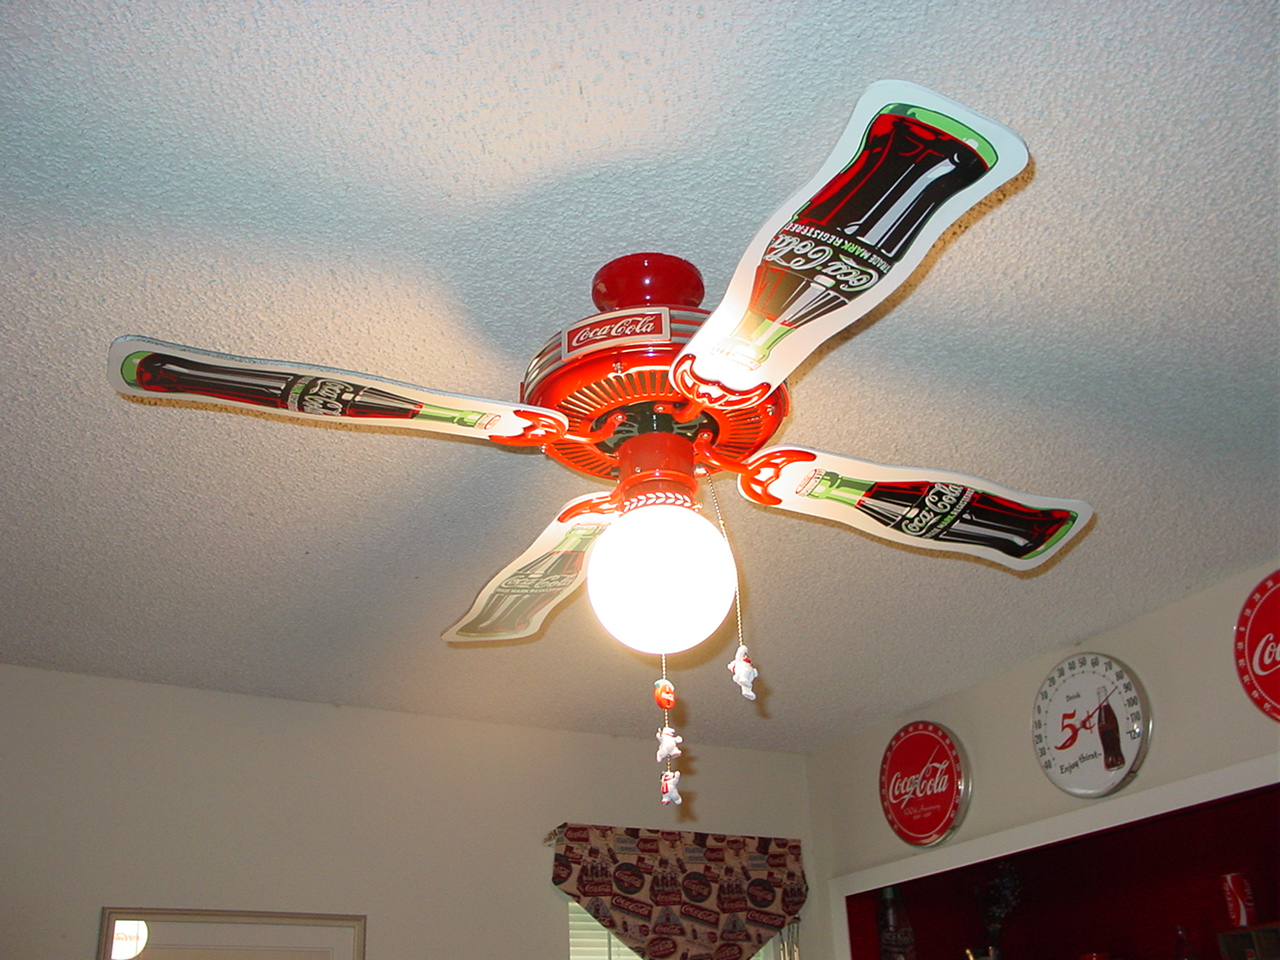 Coca cola ceiling fans tips for buyers warisan lighting coca cola ceiling fans photo 6 aloadofball Gallery